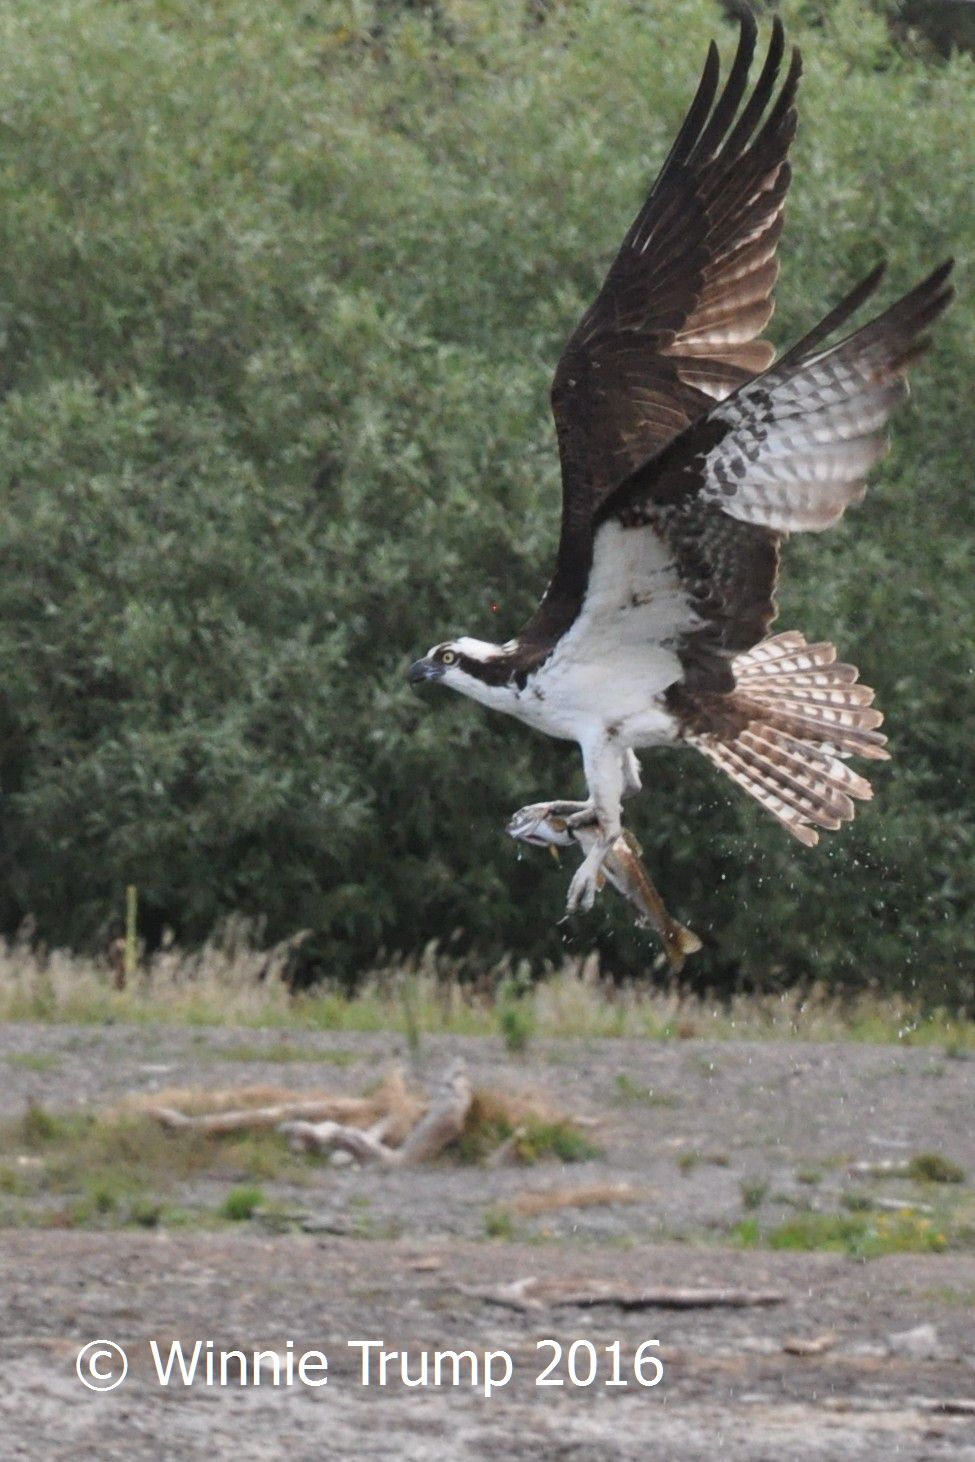 One for the Osprey